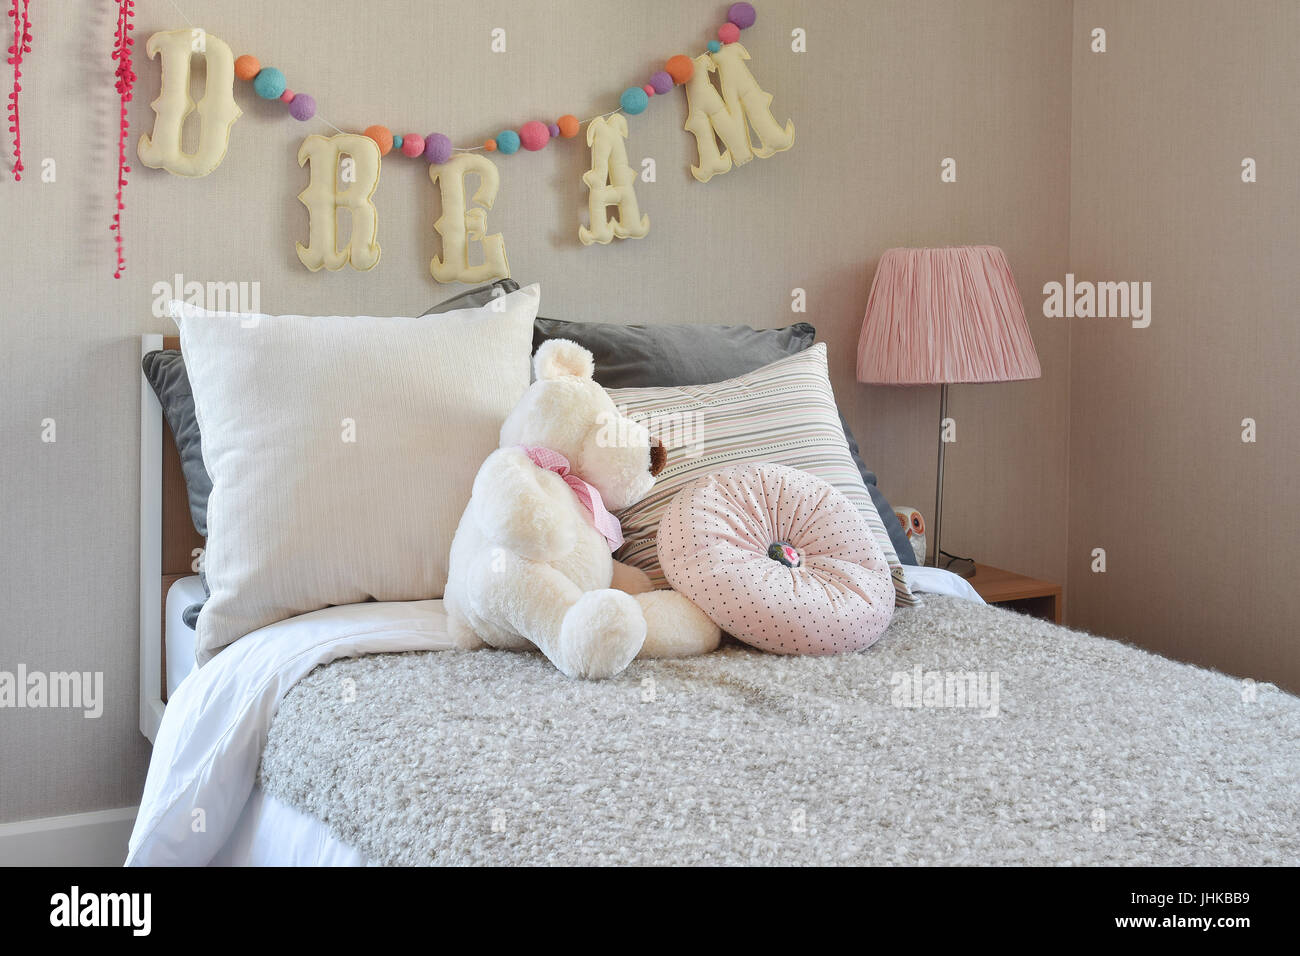 https www alamy com stock photo modern kids room with doll and pillows on bed 148558125 html